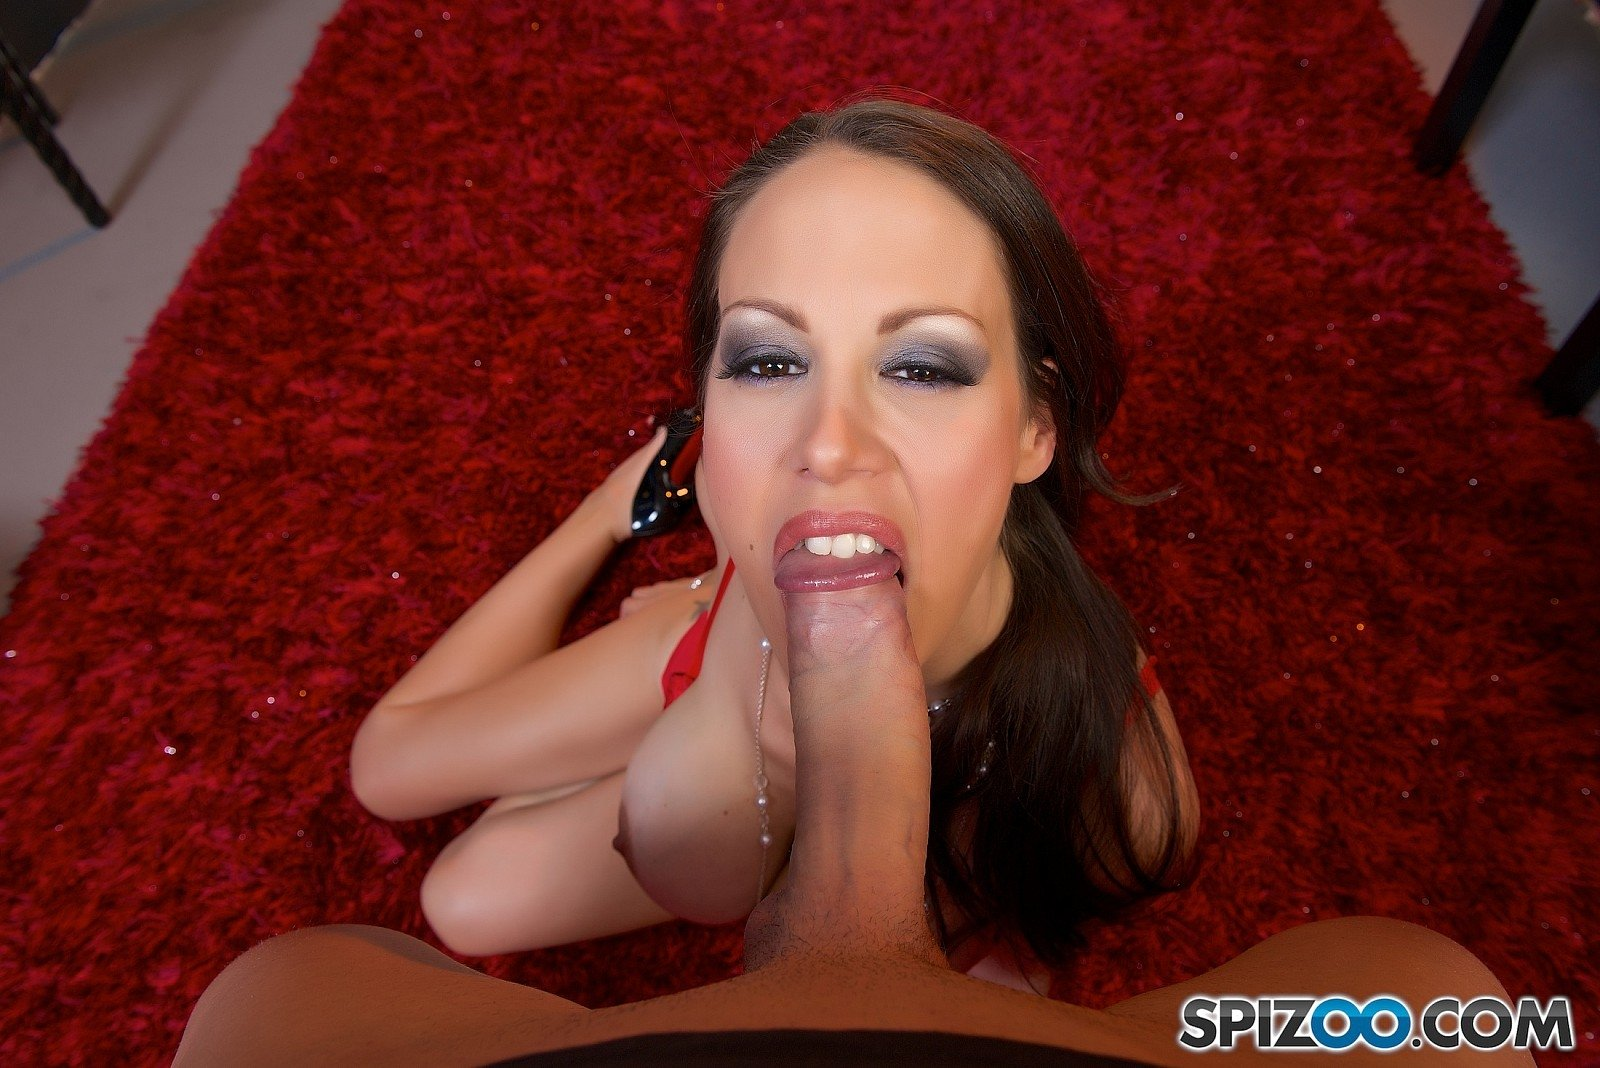 Initiating sexy girl in the art of blowjob gloryhole 17